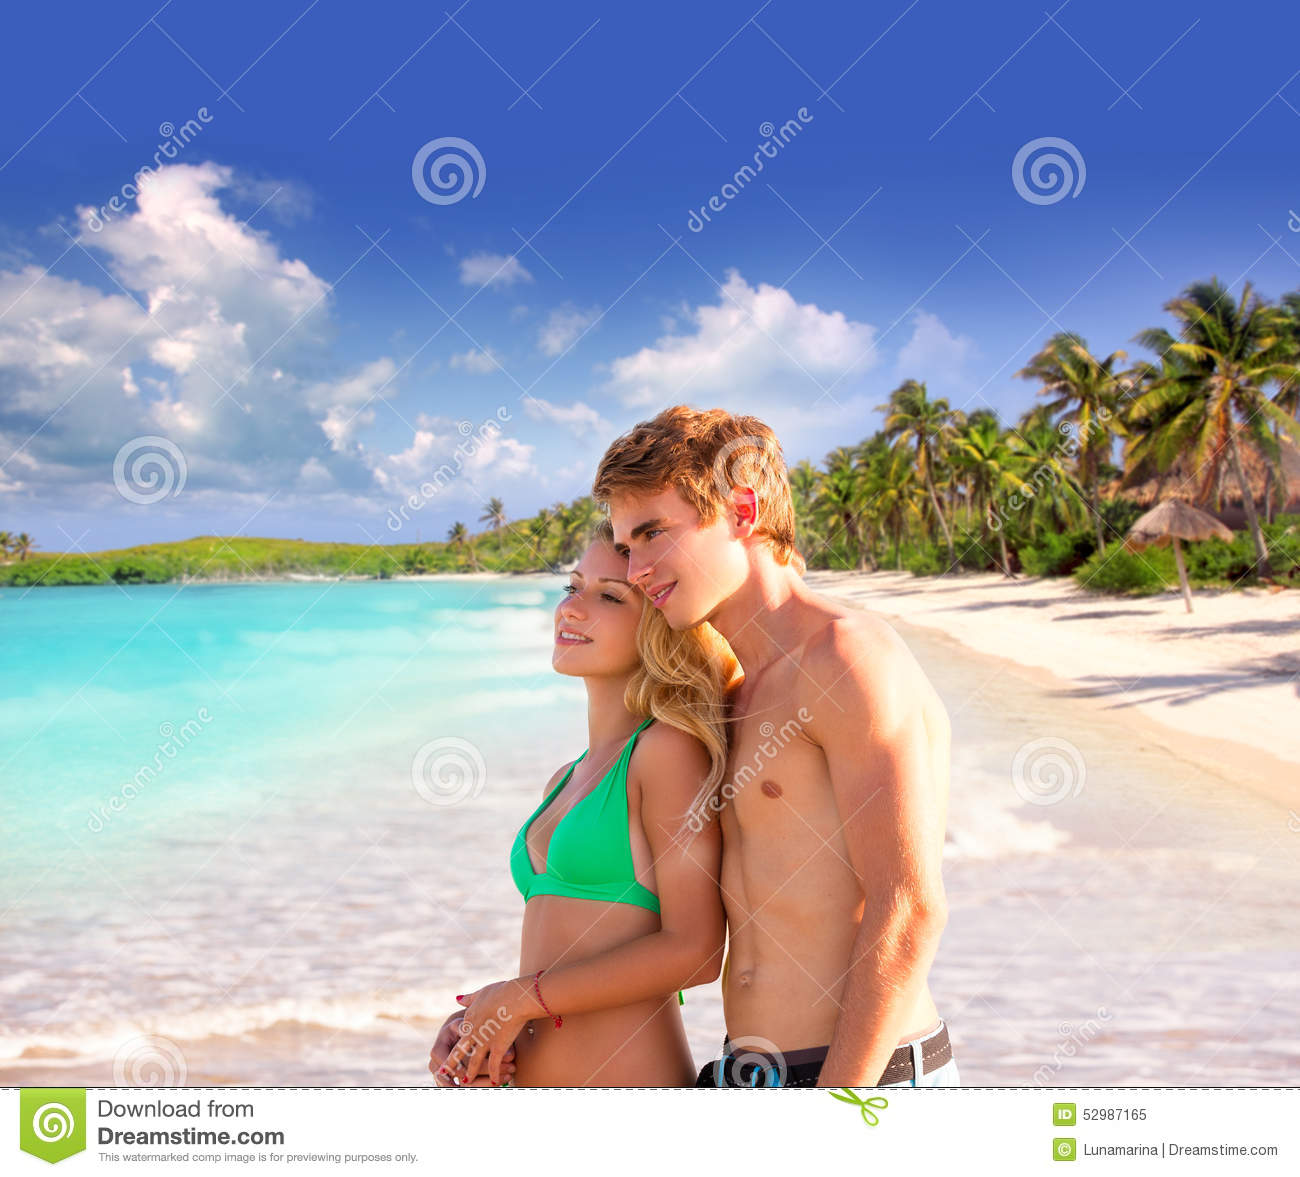 Couple At The Beach Stock Image Image Of Caucasian: Blond Couple Of Young Tourists In A Tropical Beach Stock